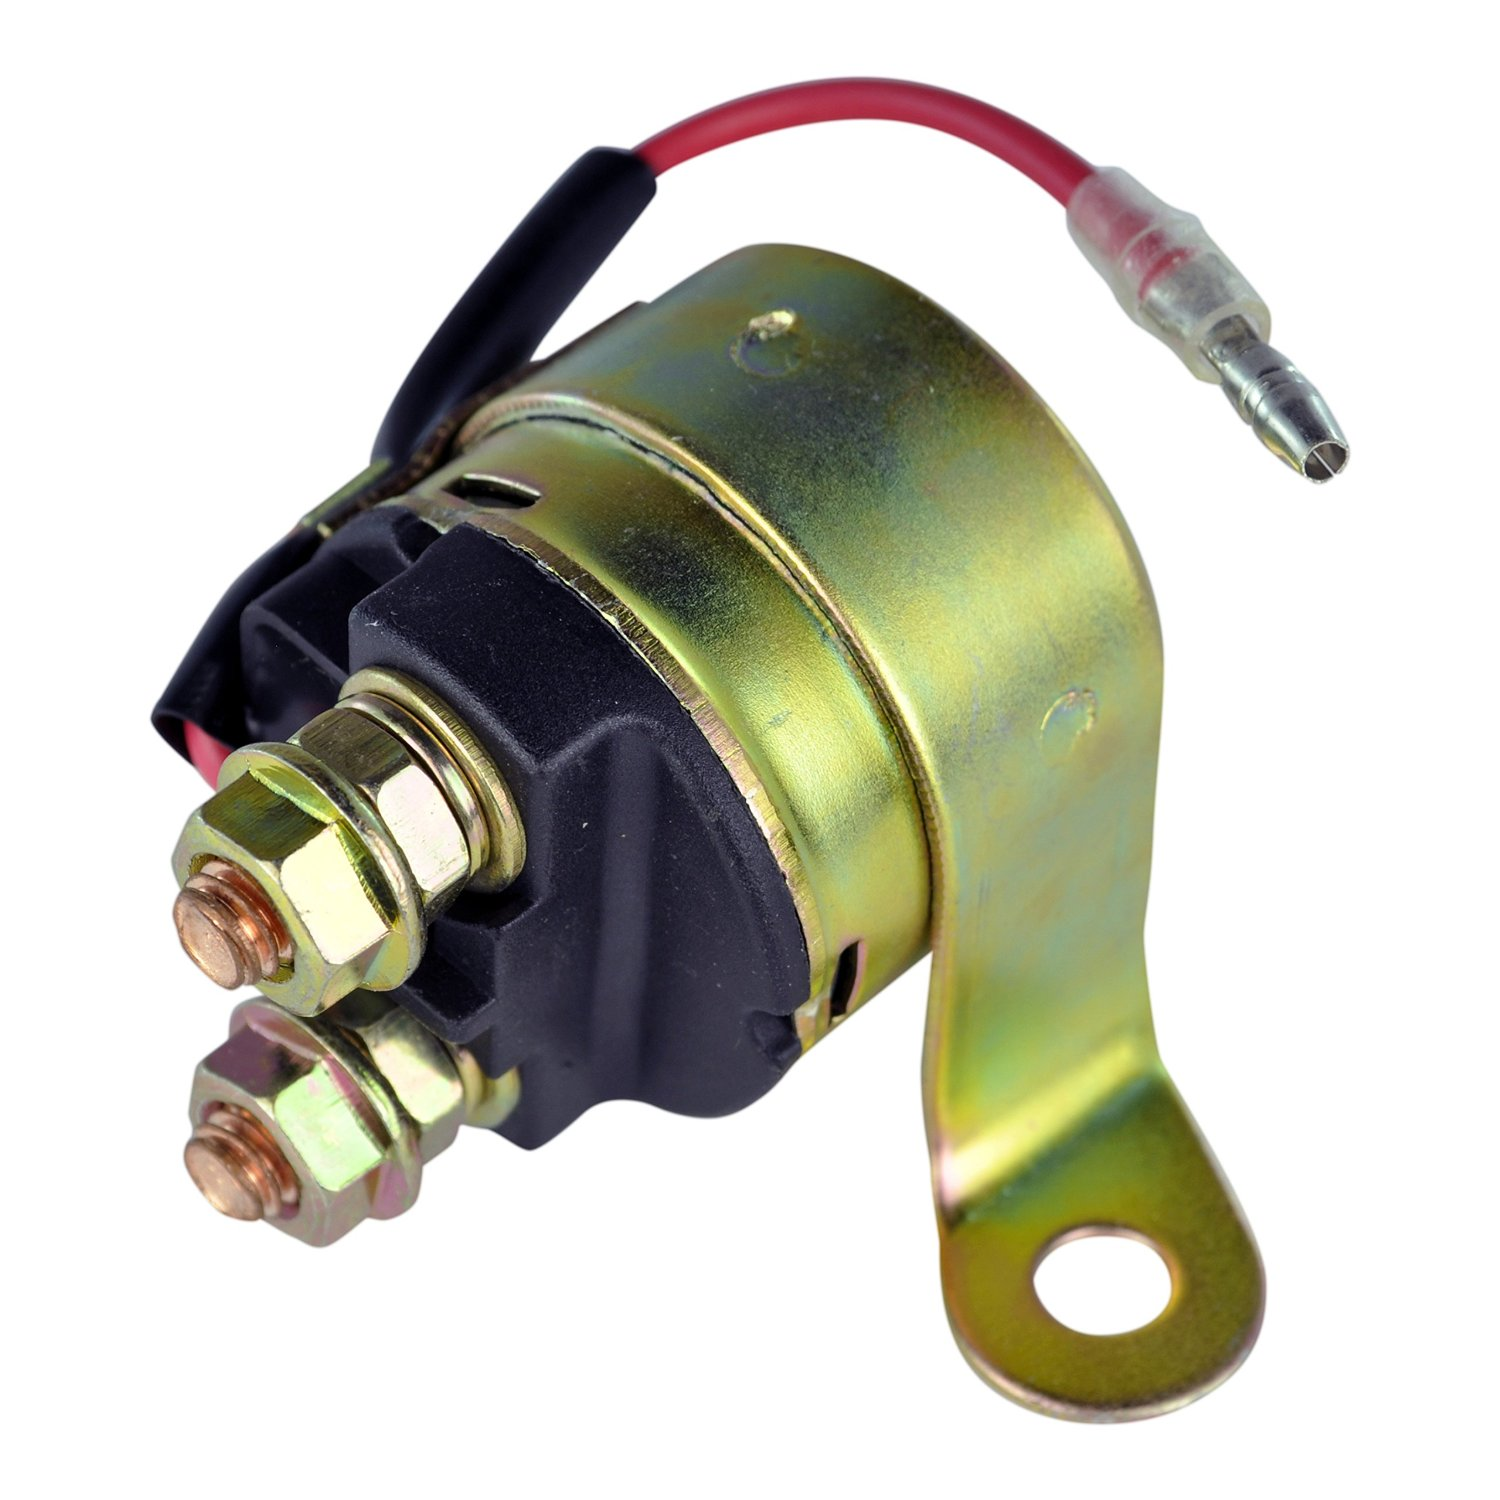 Buy Starter Relay Solenoid Switch For Polaris Sportsman Magnum Price Of Trailblazer And More Than 25 Other